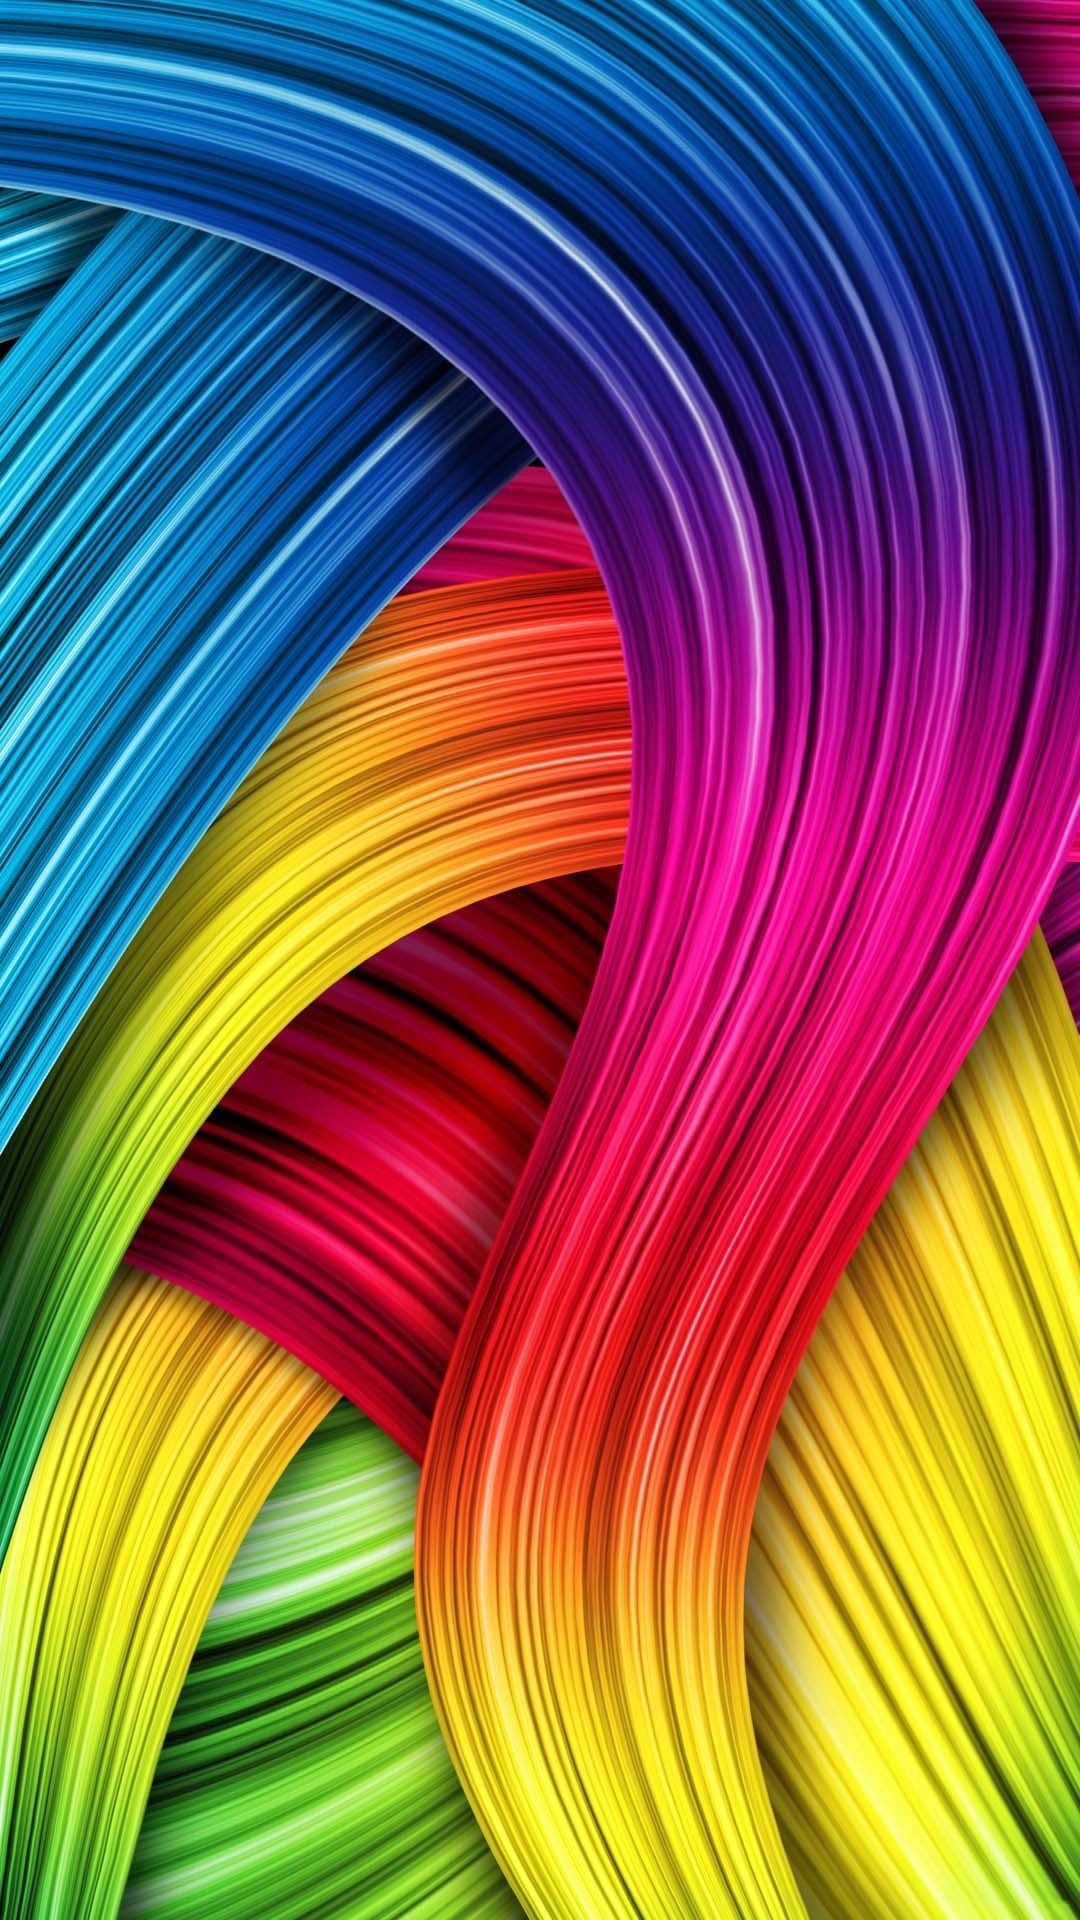 Hd wallpapers for mobile 1080x1920 - Rainbow Sony Xperia Z1 Wallpapers For Mobile 1080x1920 Hd